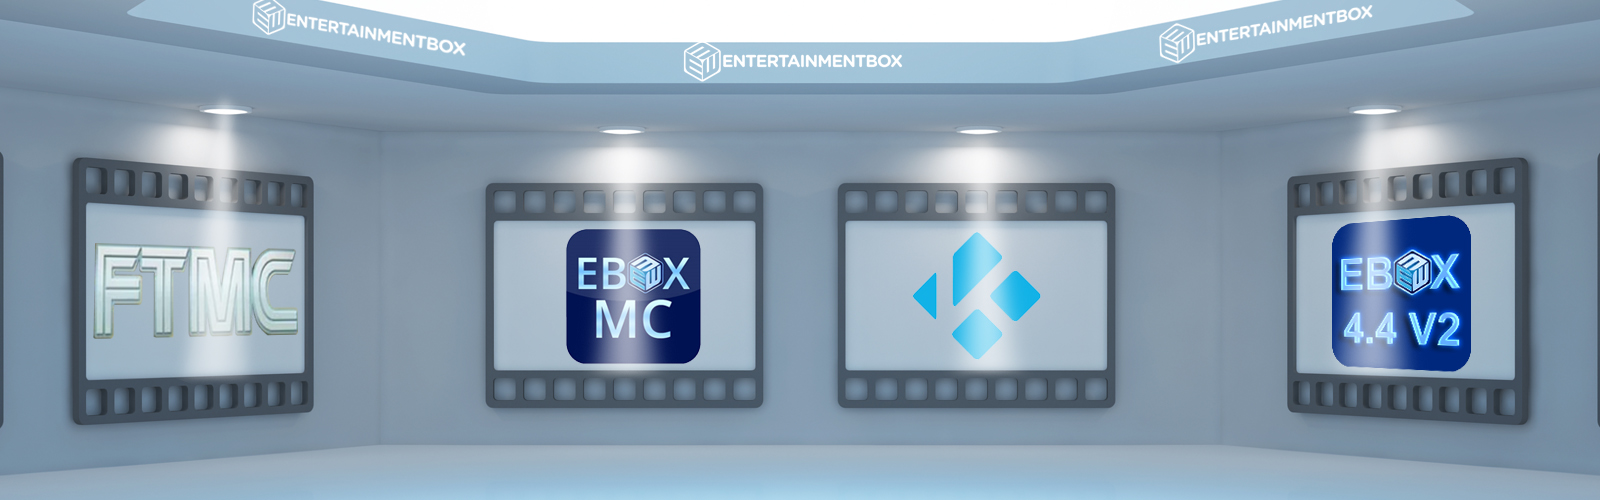 EBMC based on FTMC Kodi Jarvis for Android 4.4 users experience Kodi 17.3 Krypton